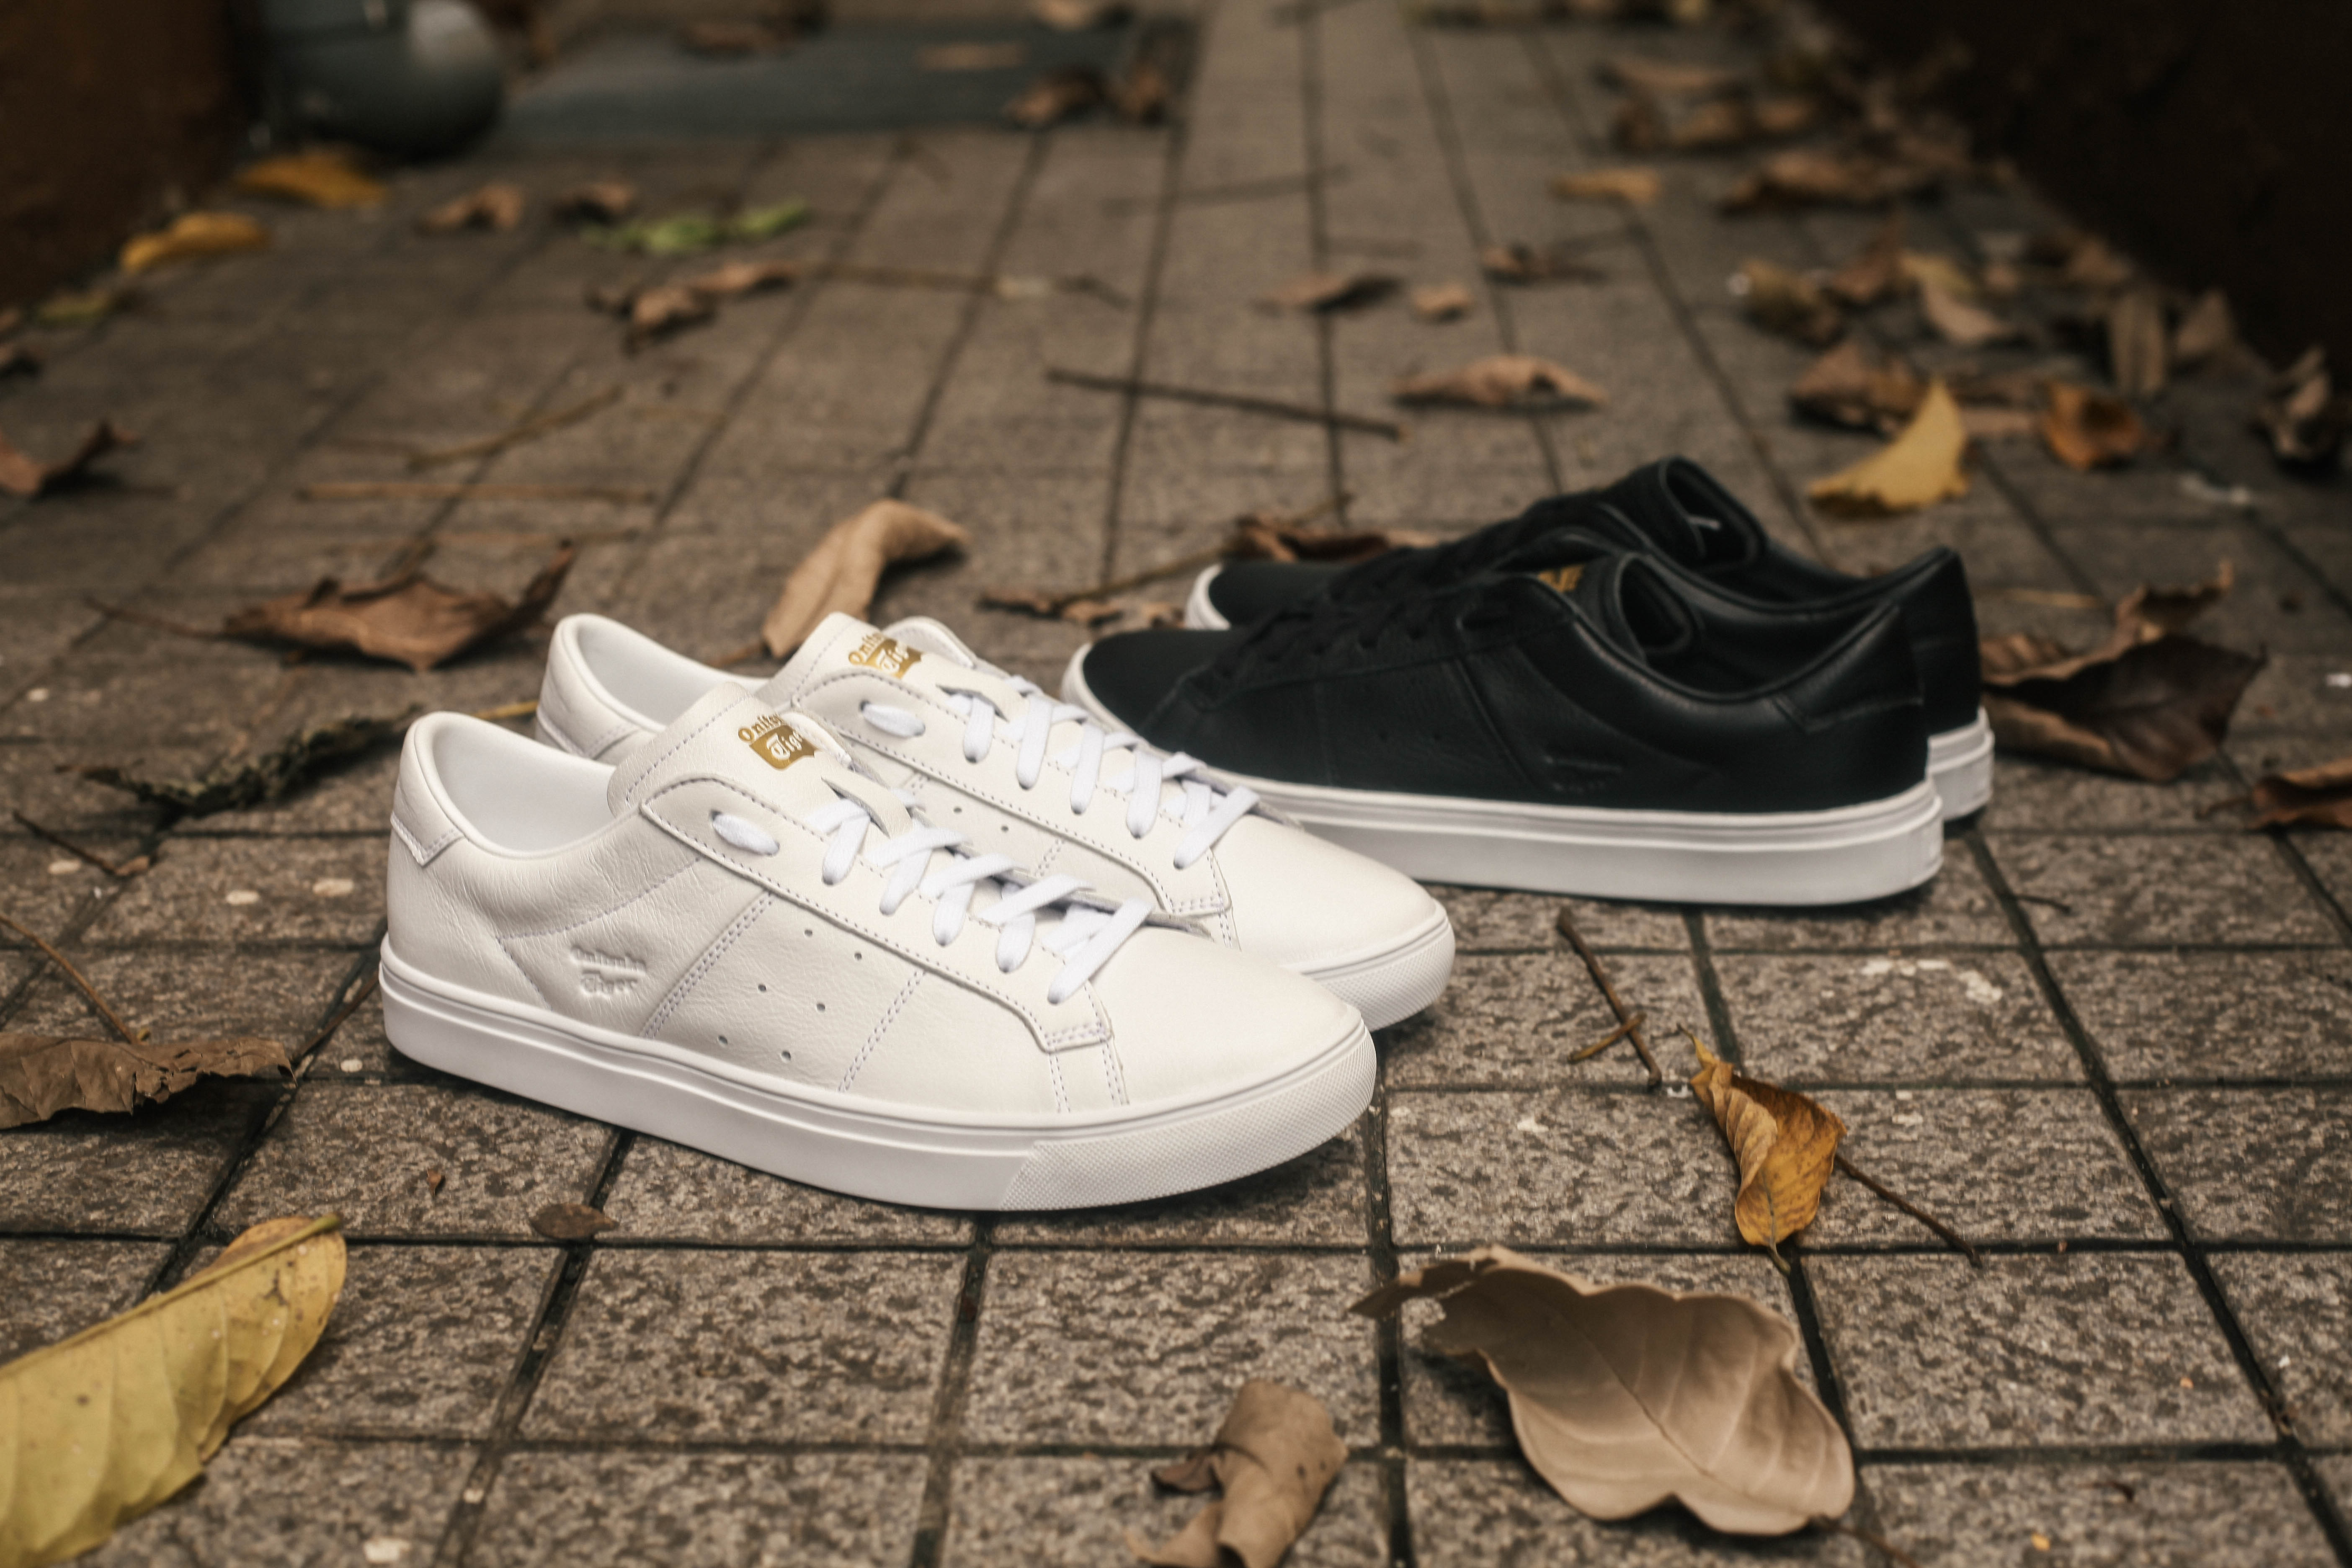 watch b7a5c 3e181 Onitsuka Tiger Revamps Their Classic LAWNSHIP Model - MASSES